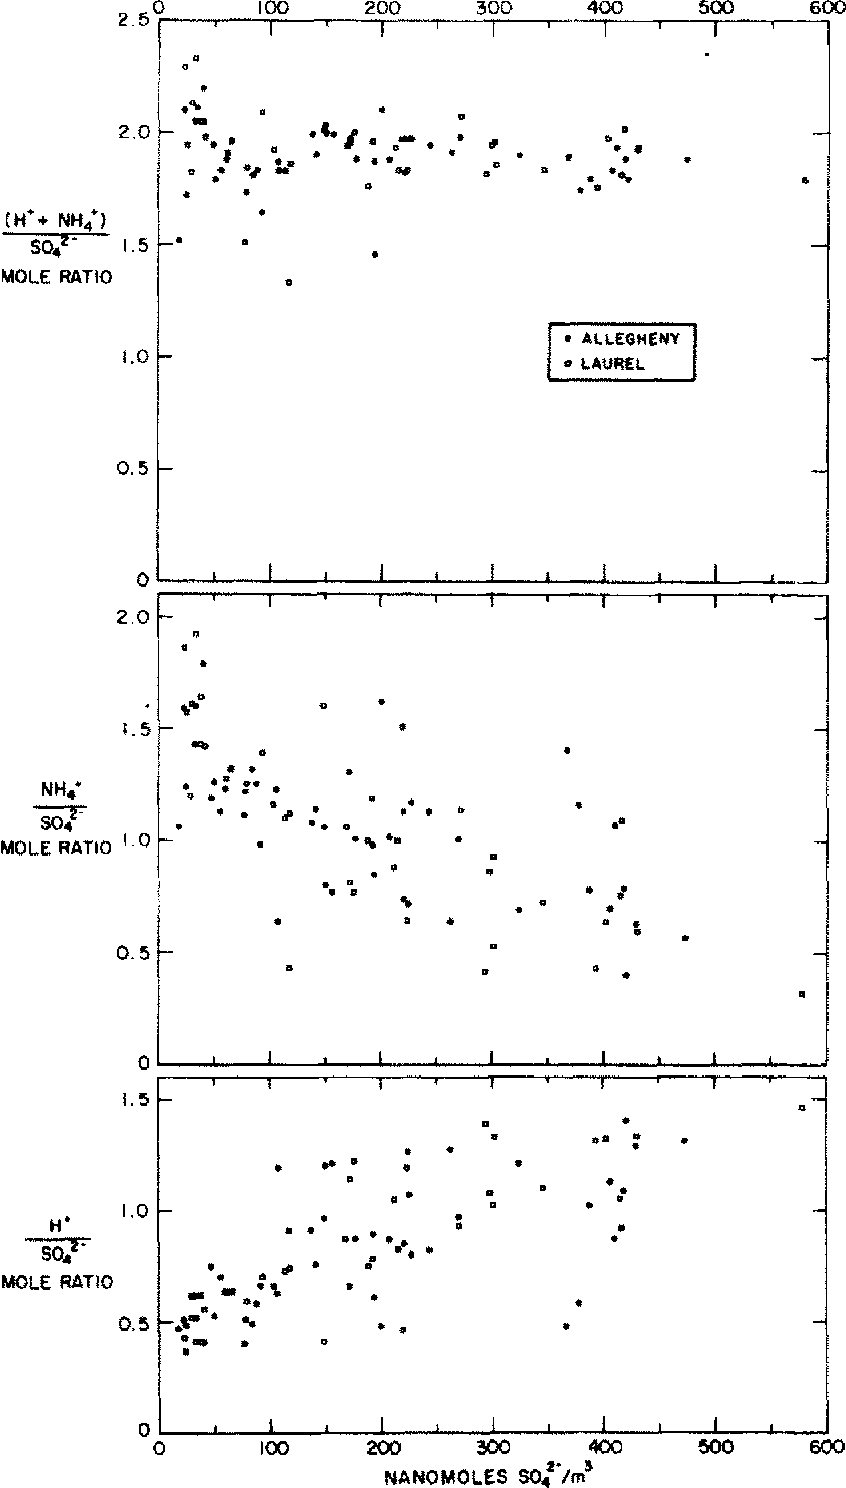 Soi So Figure 3 From Atmospheric Acidity Measurements On Allegheny